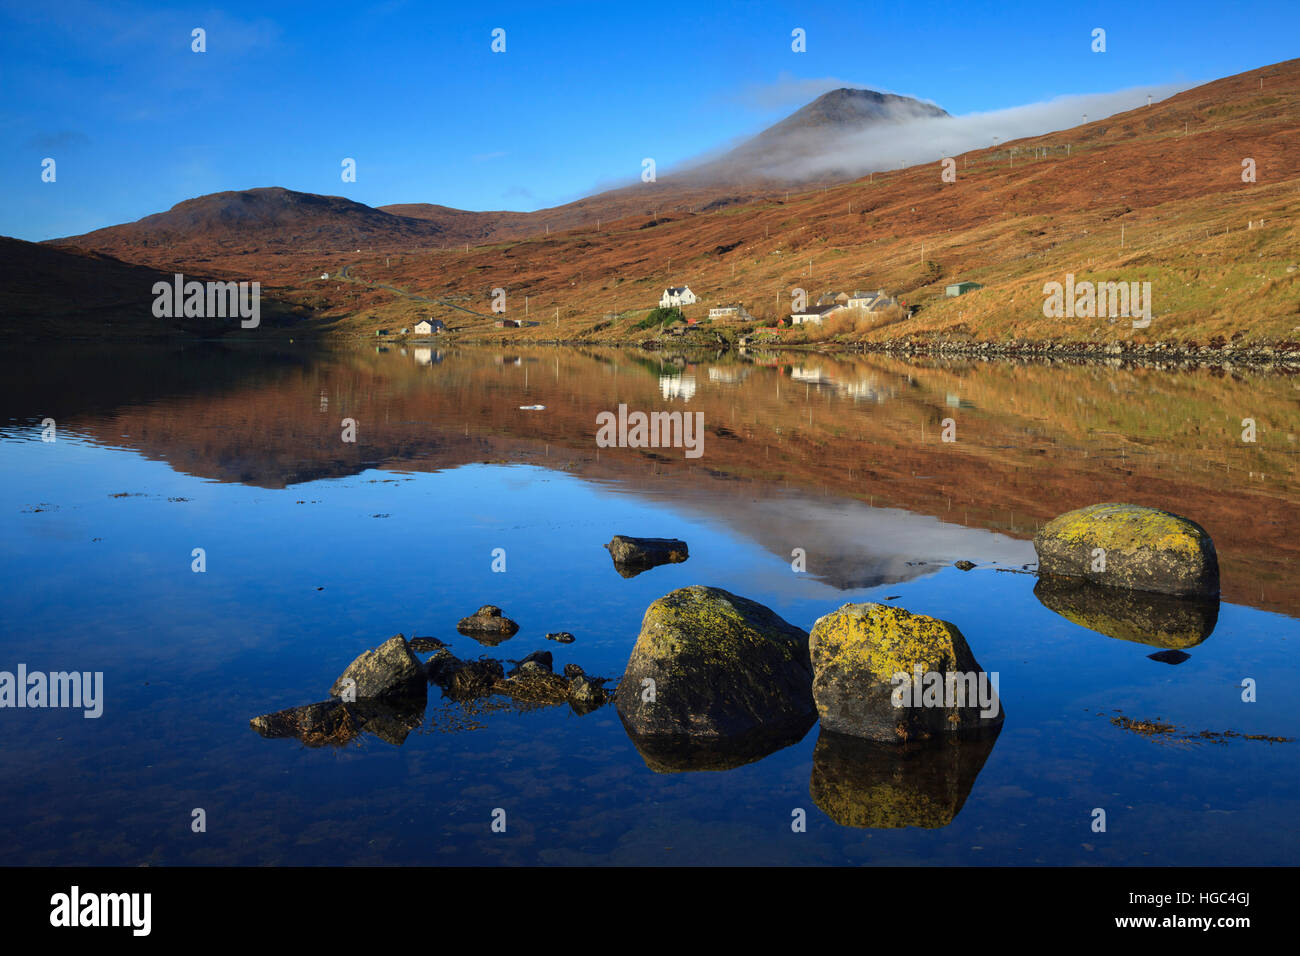 Loch Mharaig with An Clisean, the highest mountain on the Isle of Harris in the distance. - Stock Image